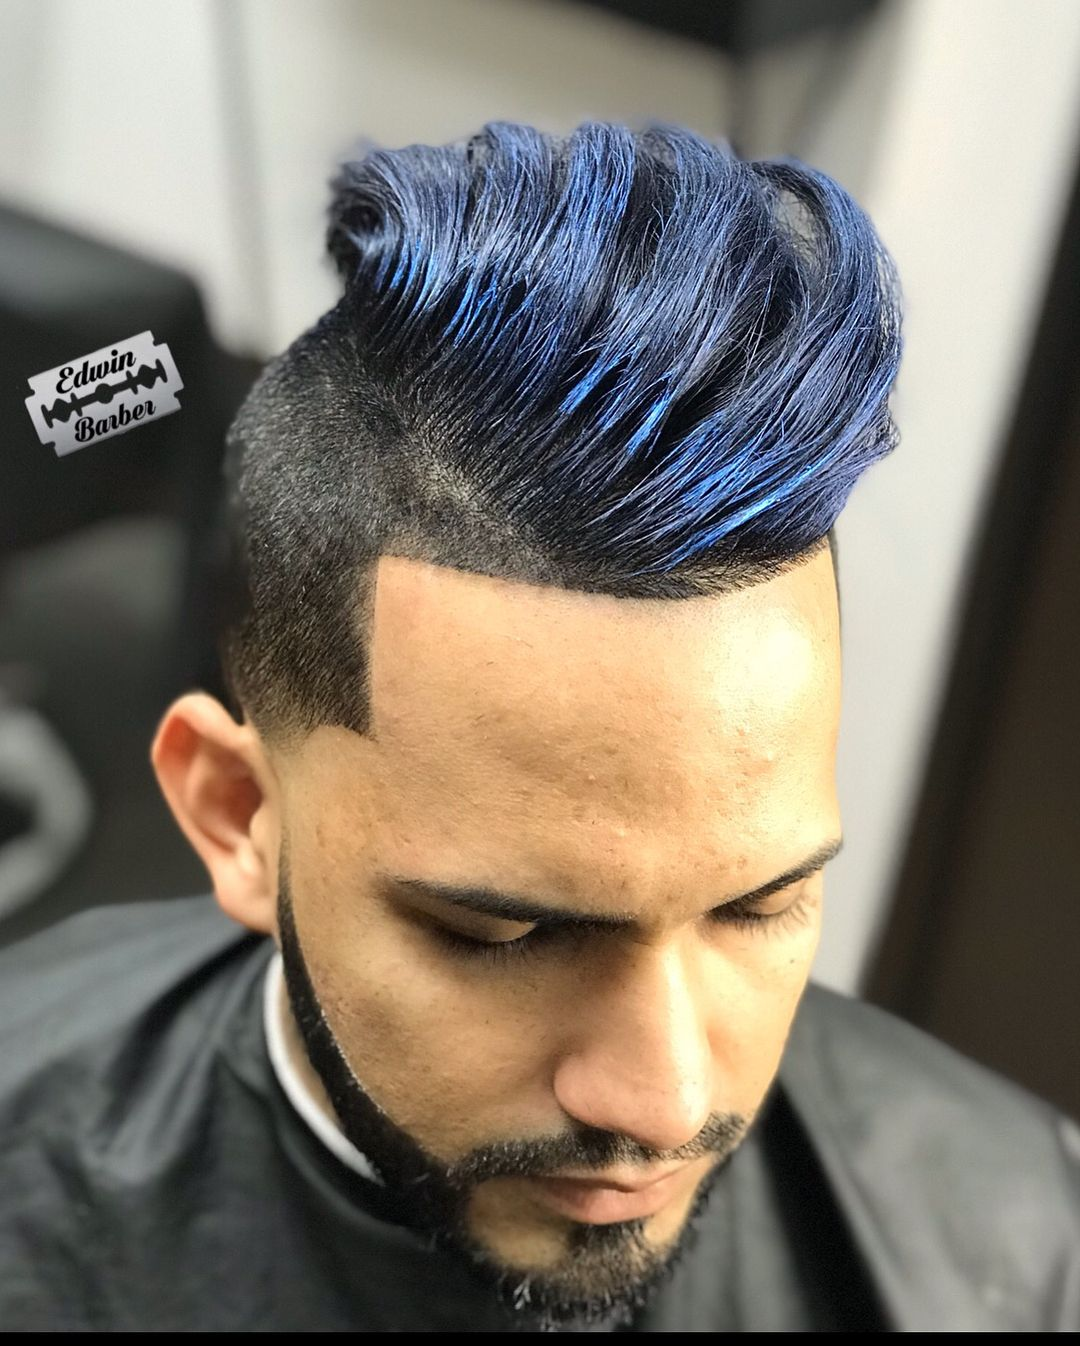 15 Cool And Trendy Faux Hawk Styles Men S Hairstyles Faux Hawk Men Faux Hawk Hair Styles